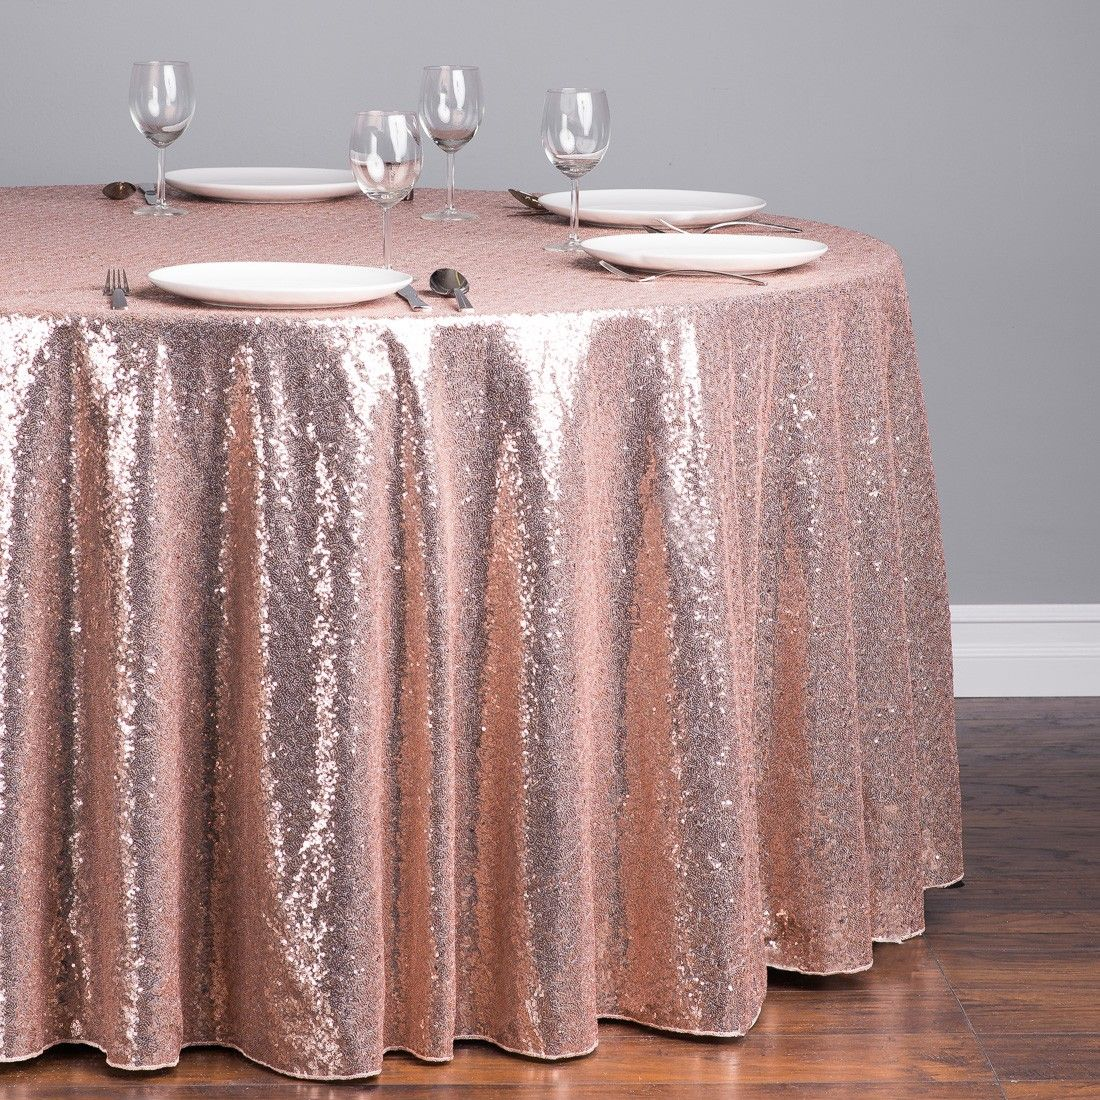 Charming Explore Round Tablecloth, Sequin Tablecloth, And More!